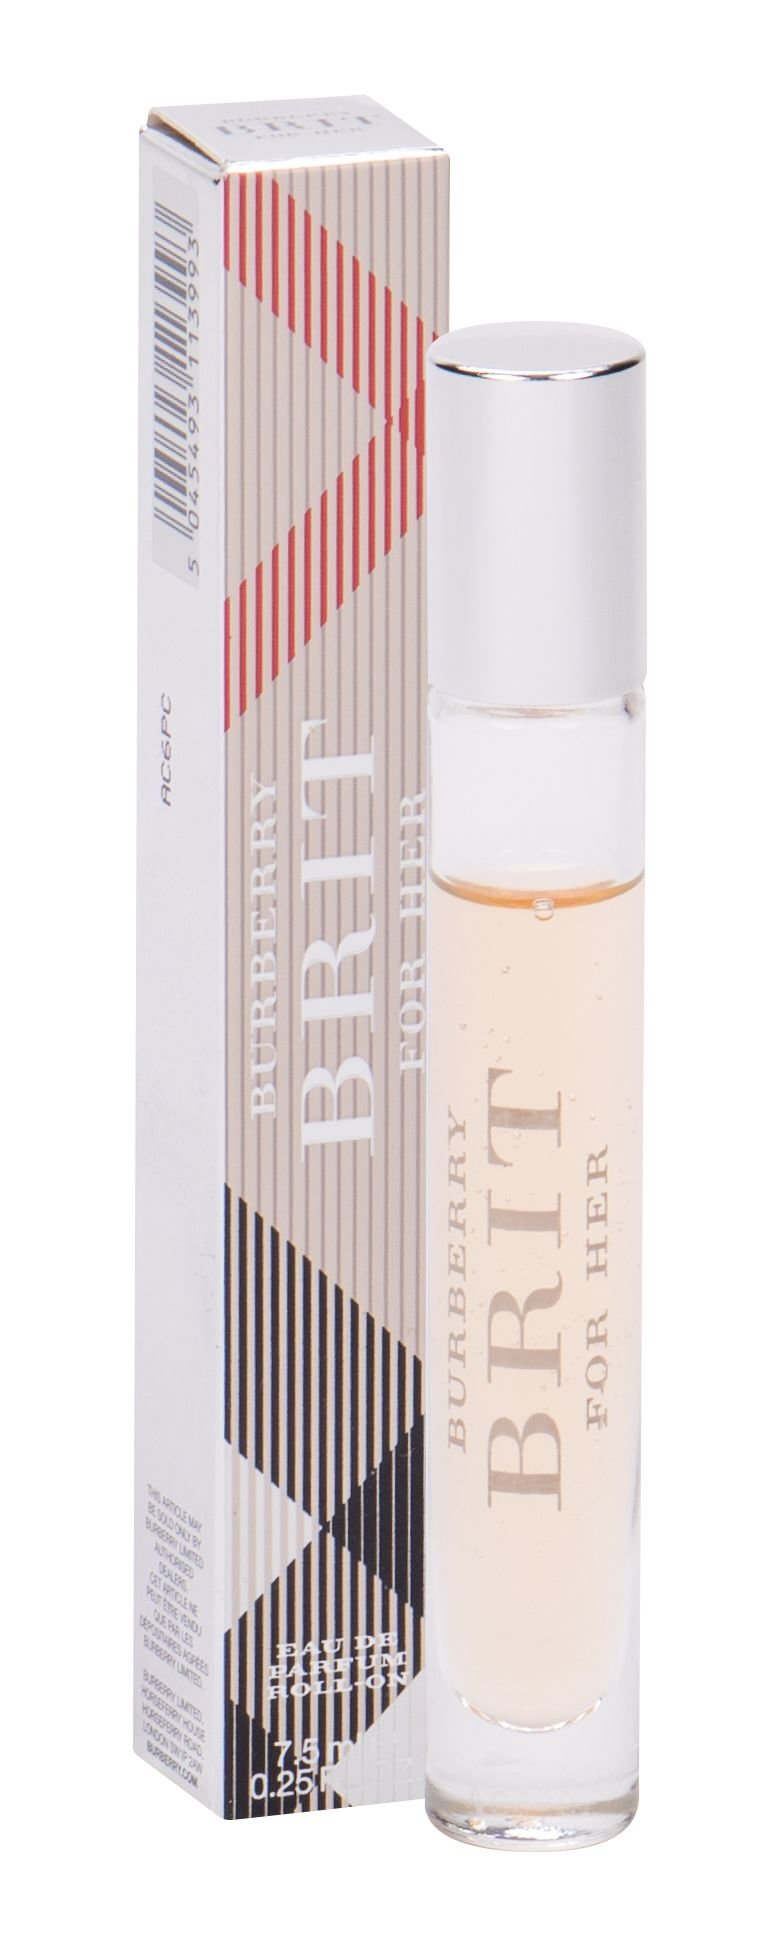 Burberry Brit for Her  (Parfémovaná voda, W, 7,5 ml)